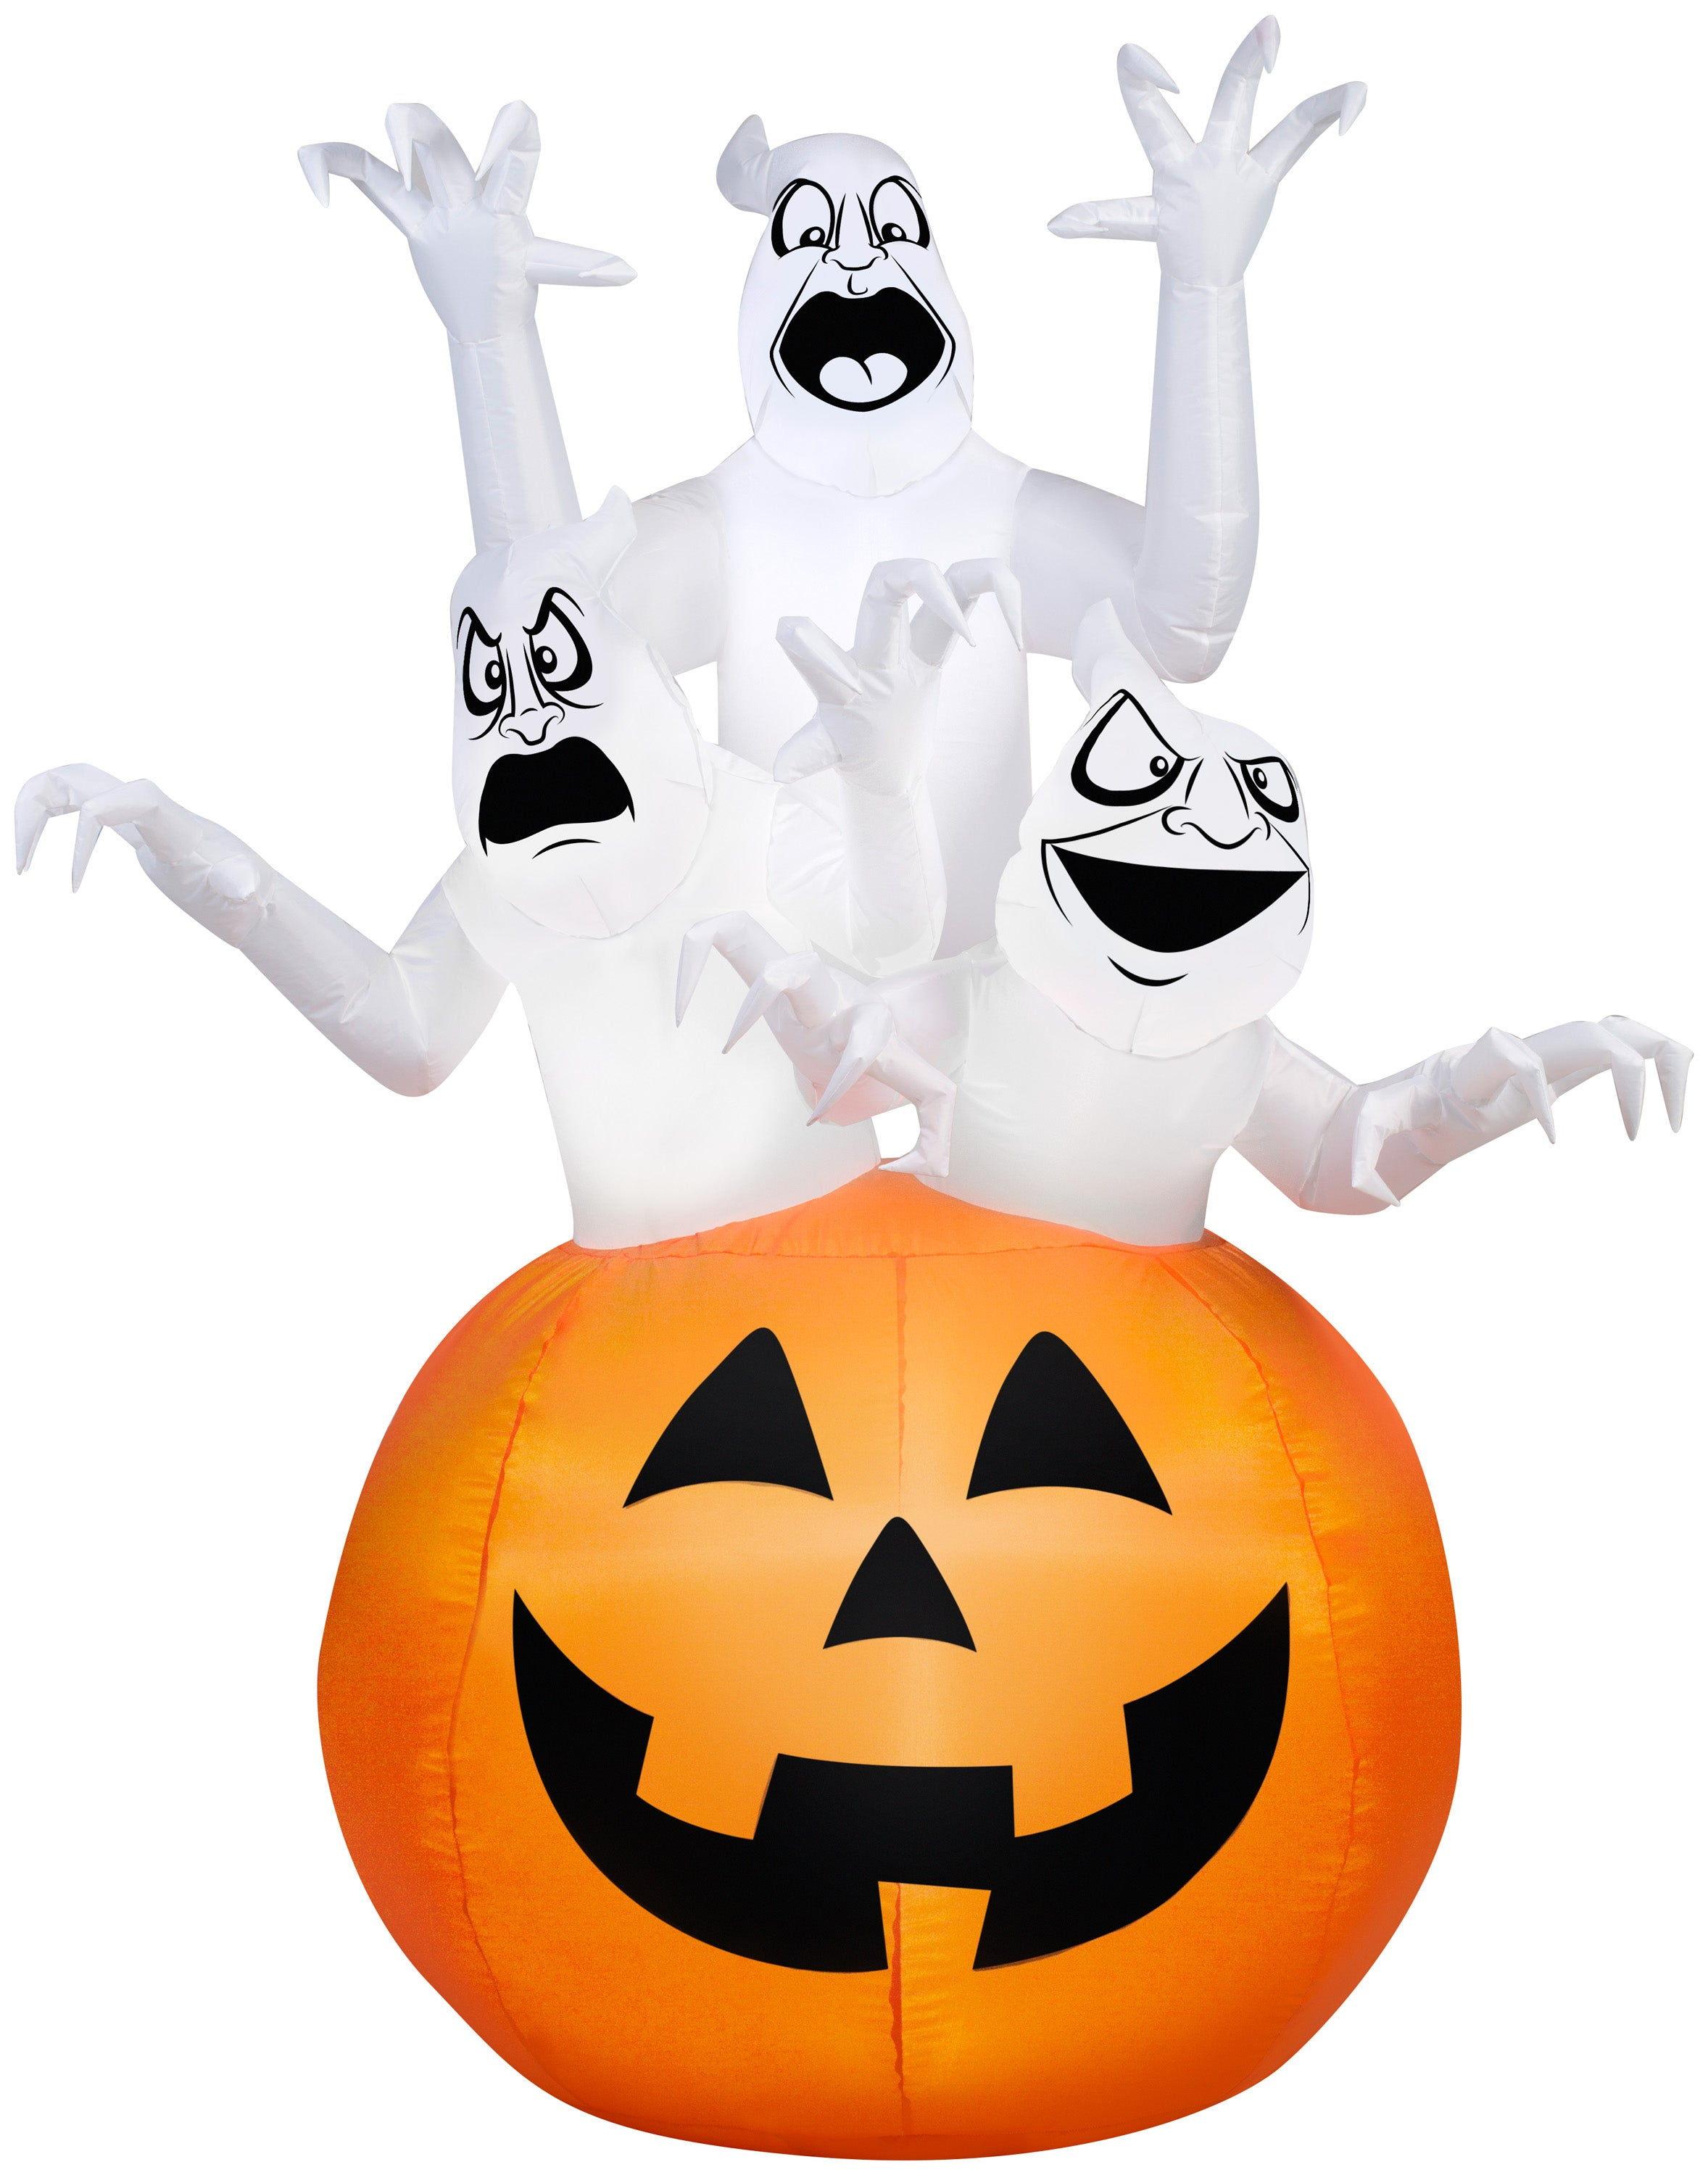 6' Airblown Three Ghosts in Pumpkin Halloween Inflatable